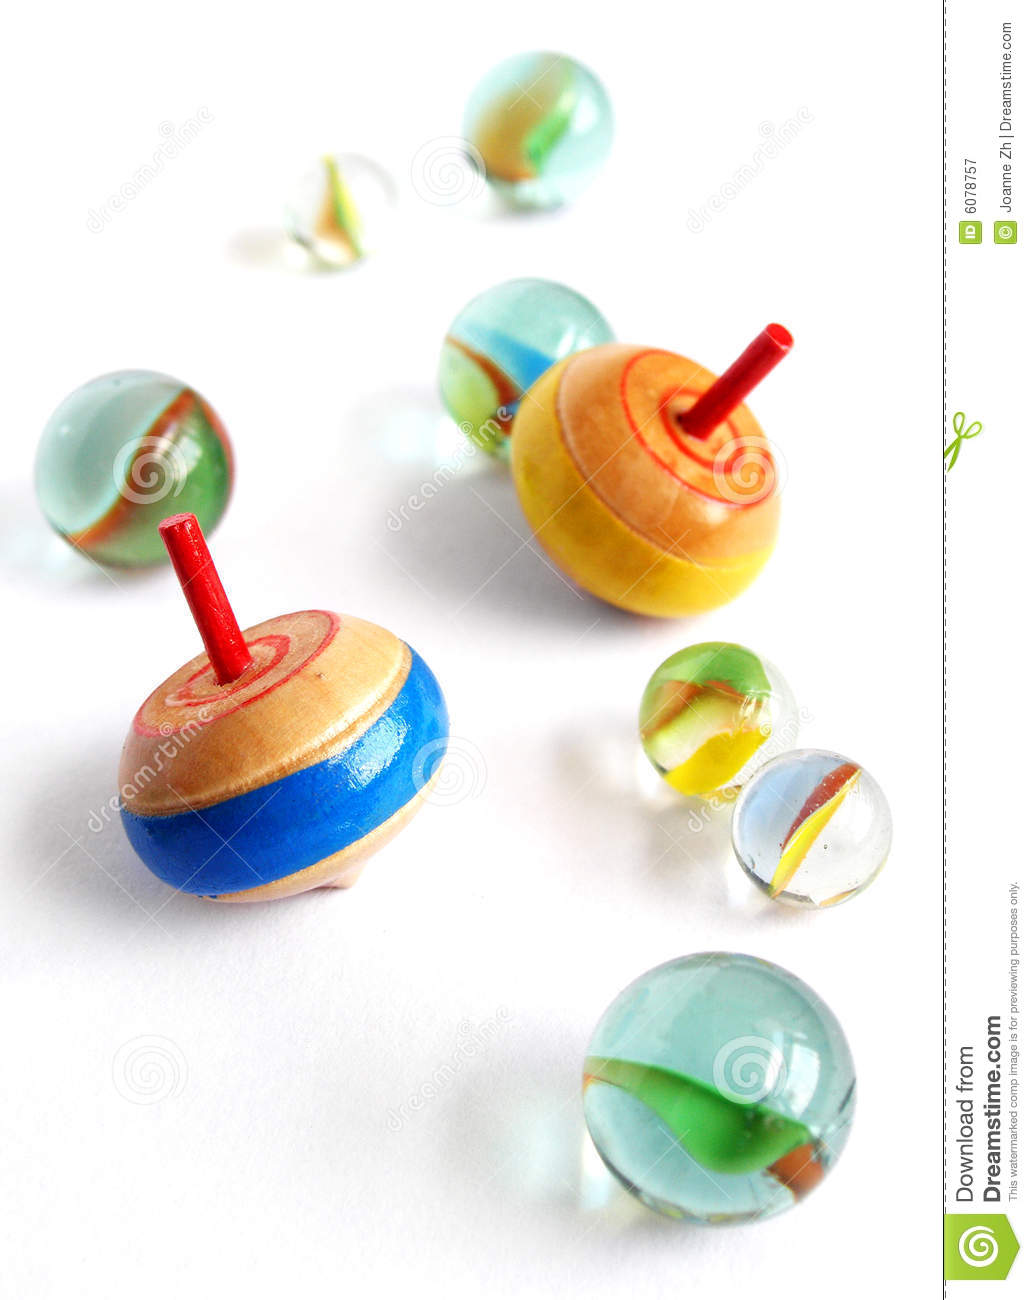 Marbles tops wooden